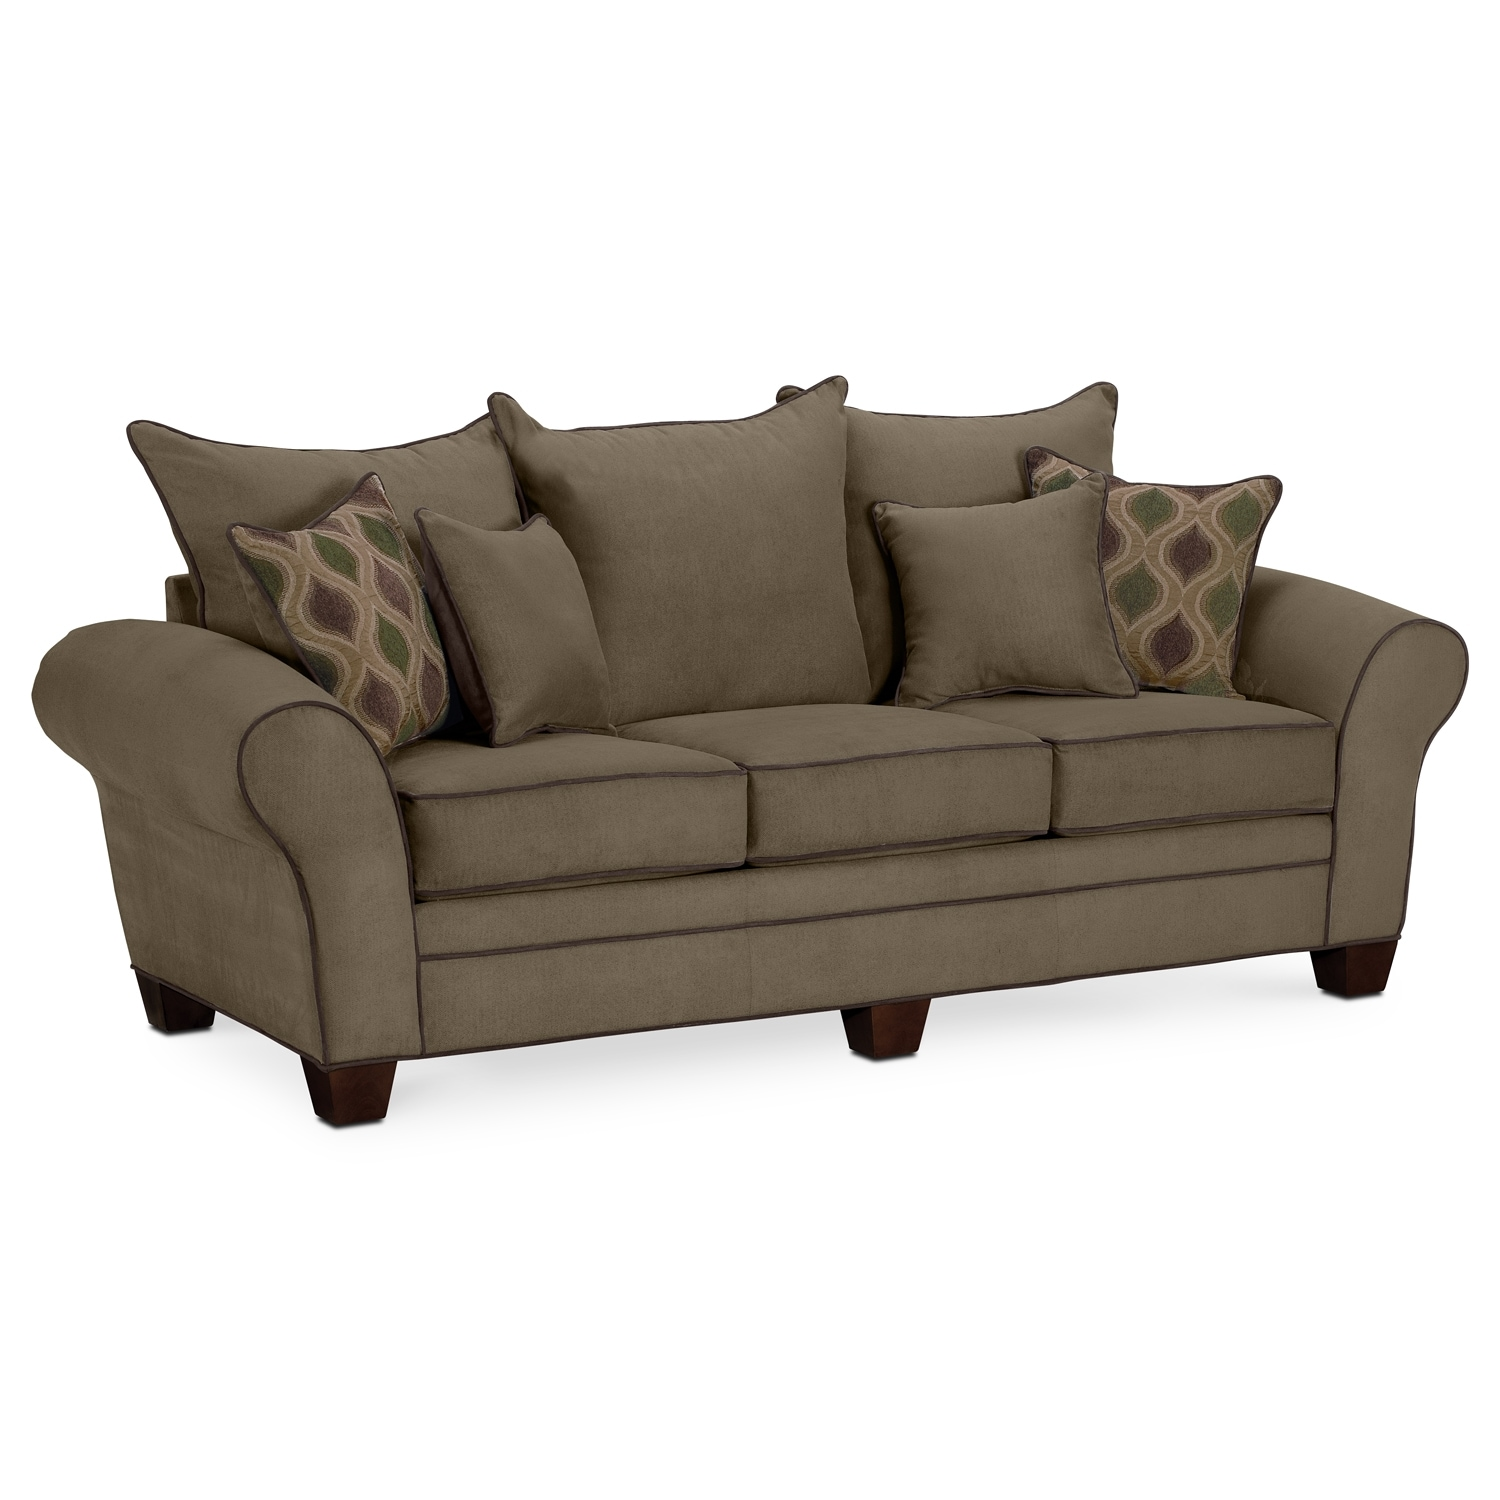 Living Room Furniture - Strauss Olive Sofa